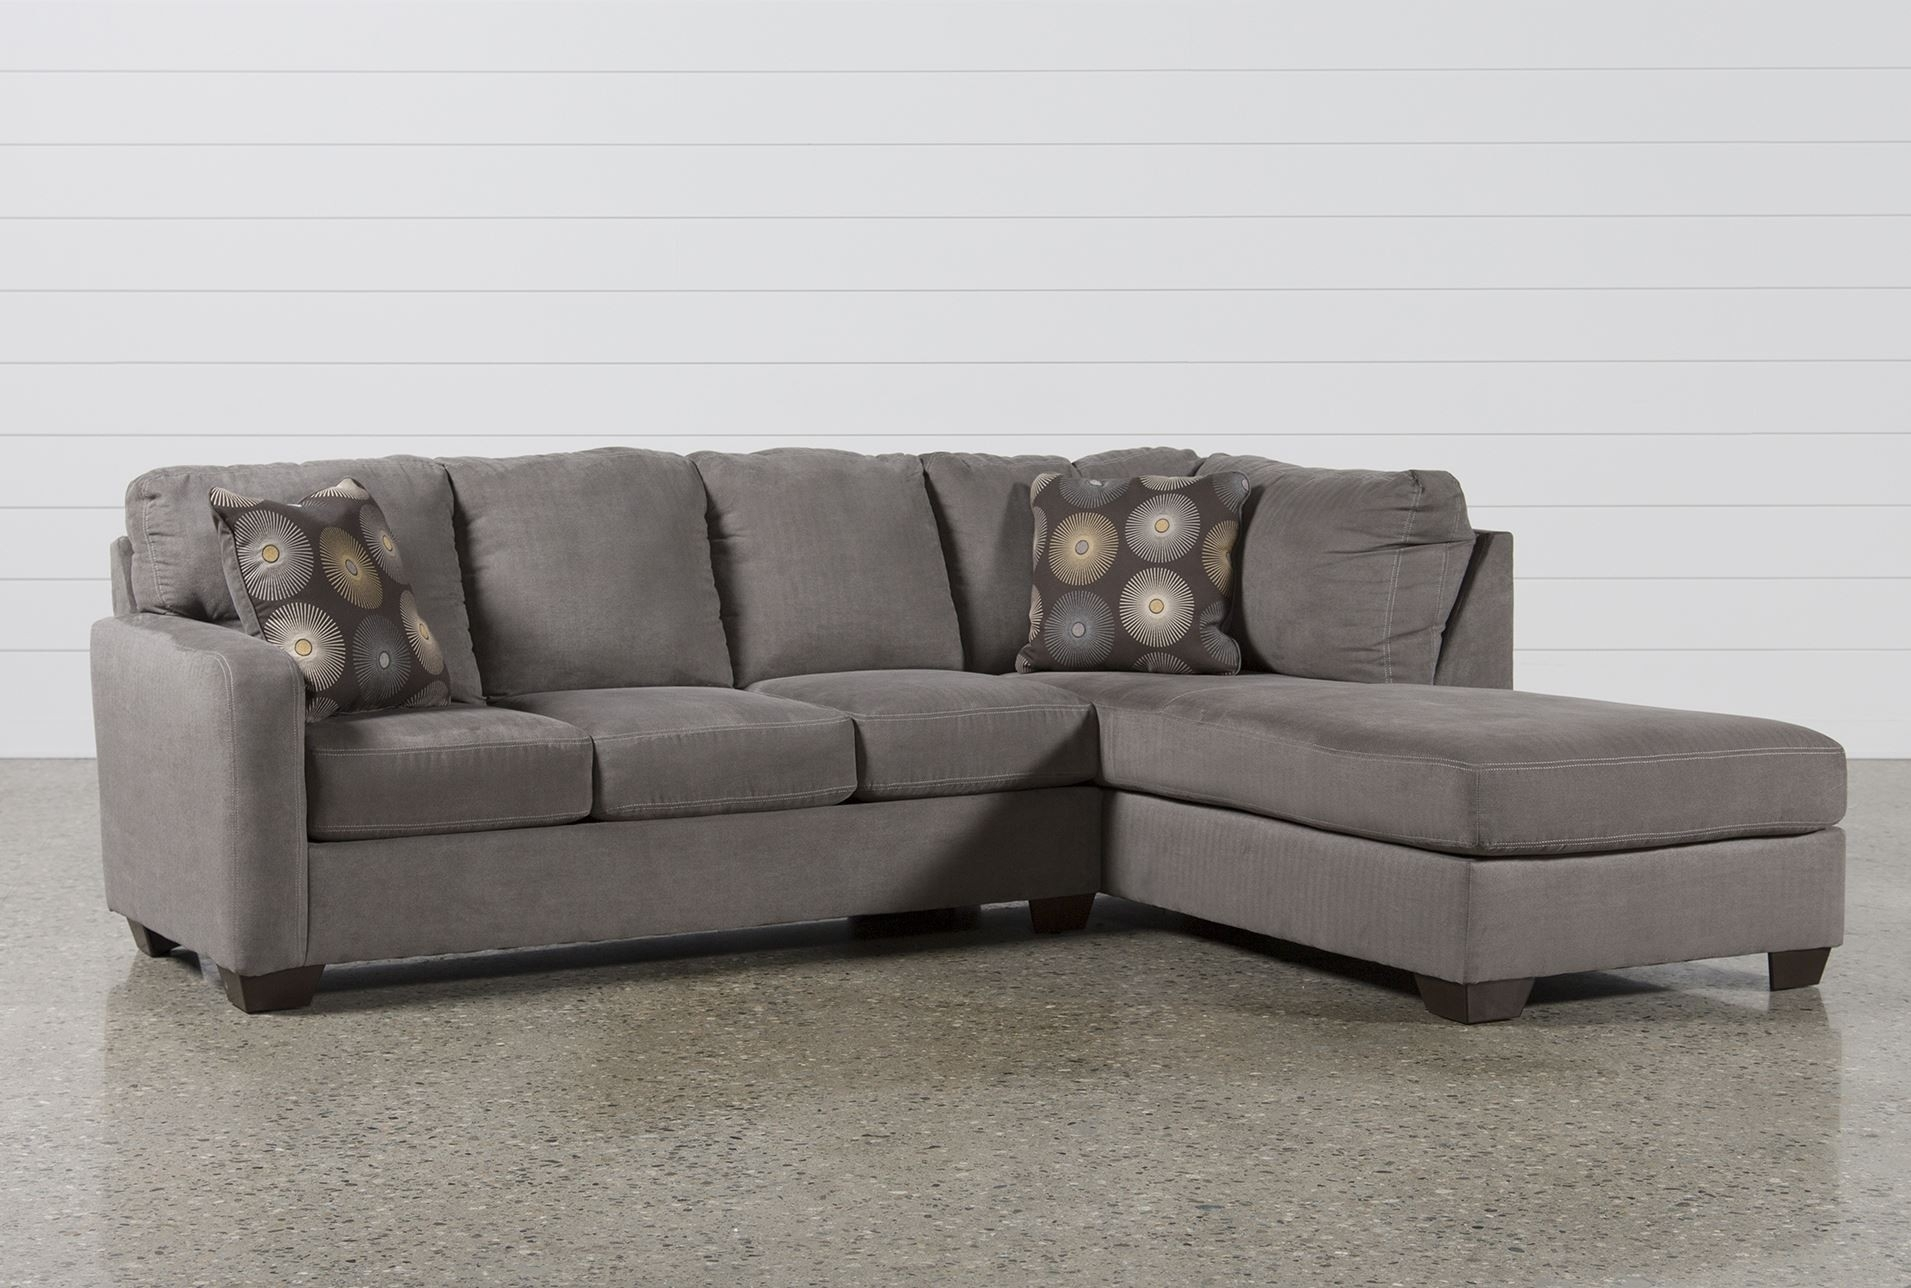 Lovely 2 Piece Sectional Sofa - Buildsimplehome regarding Evan 2 Piece Sectionals With Raf Chaise (Image 24 of 30)